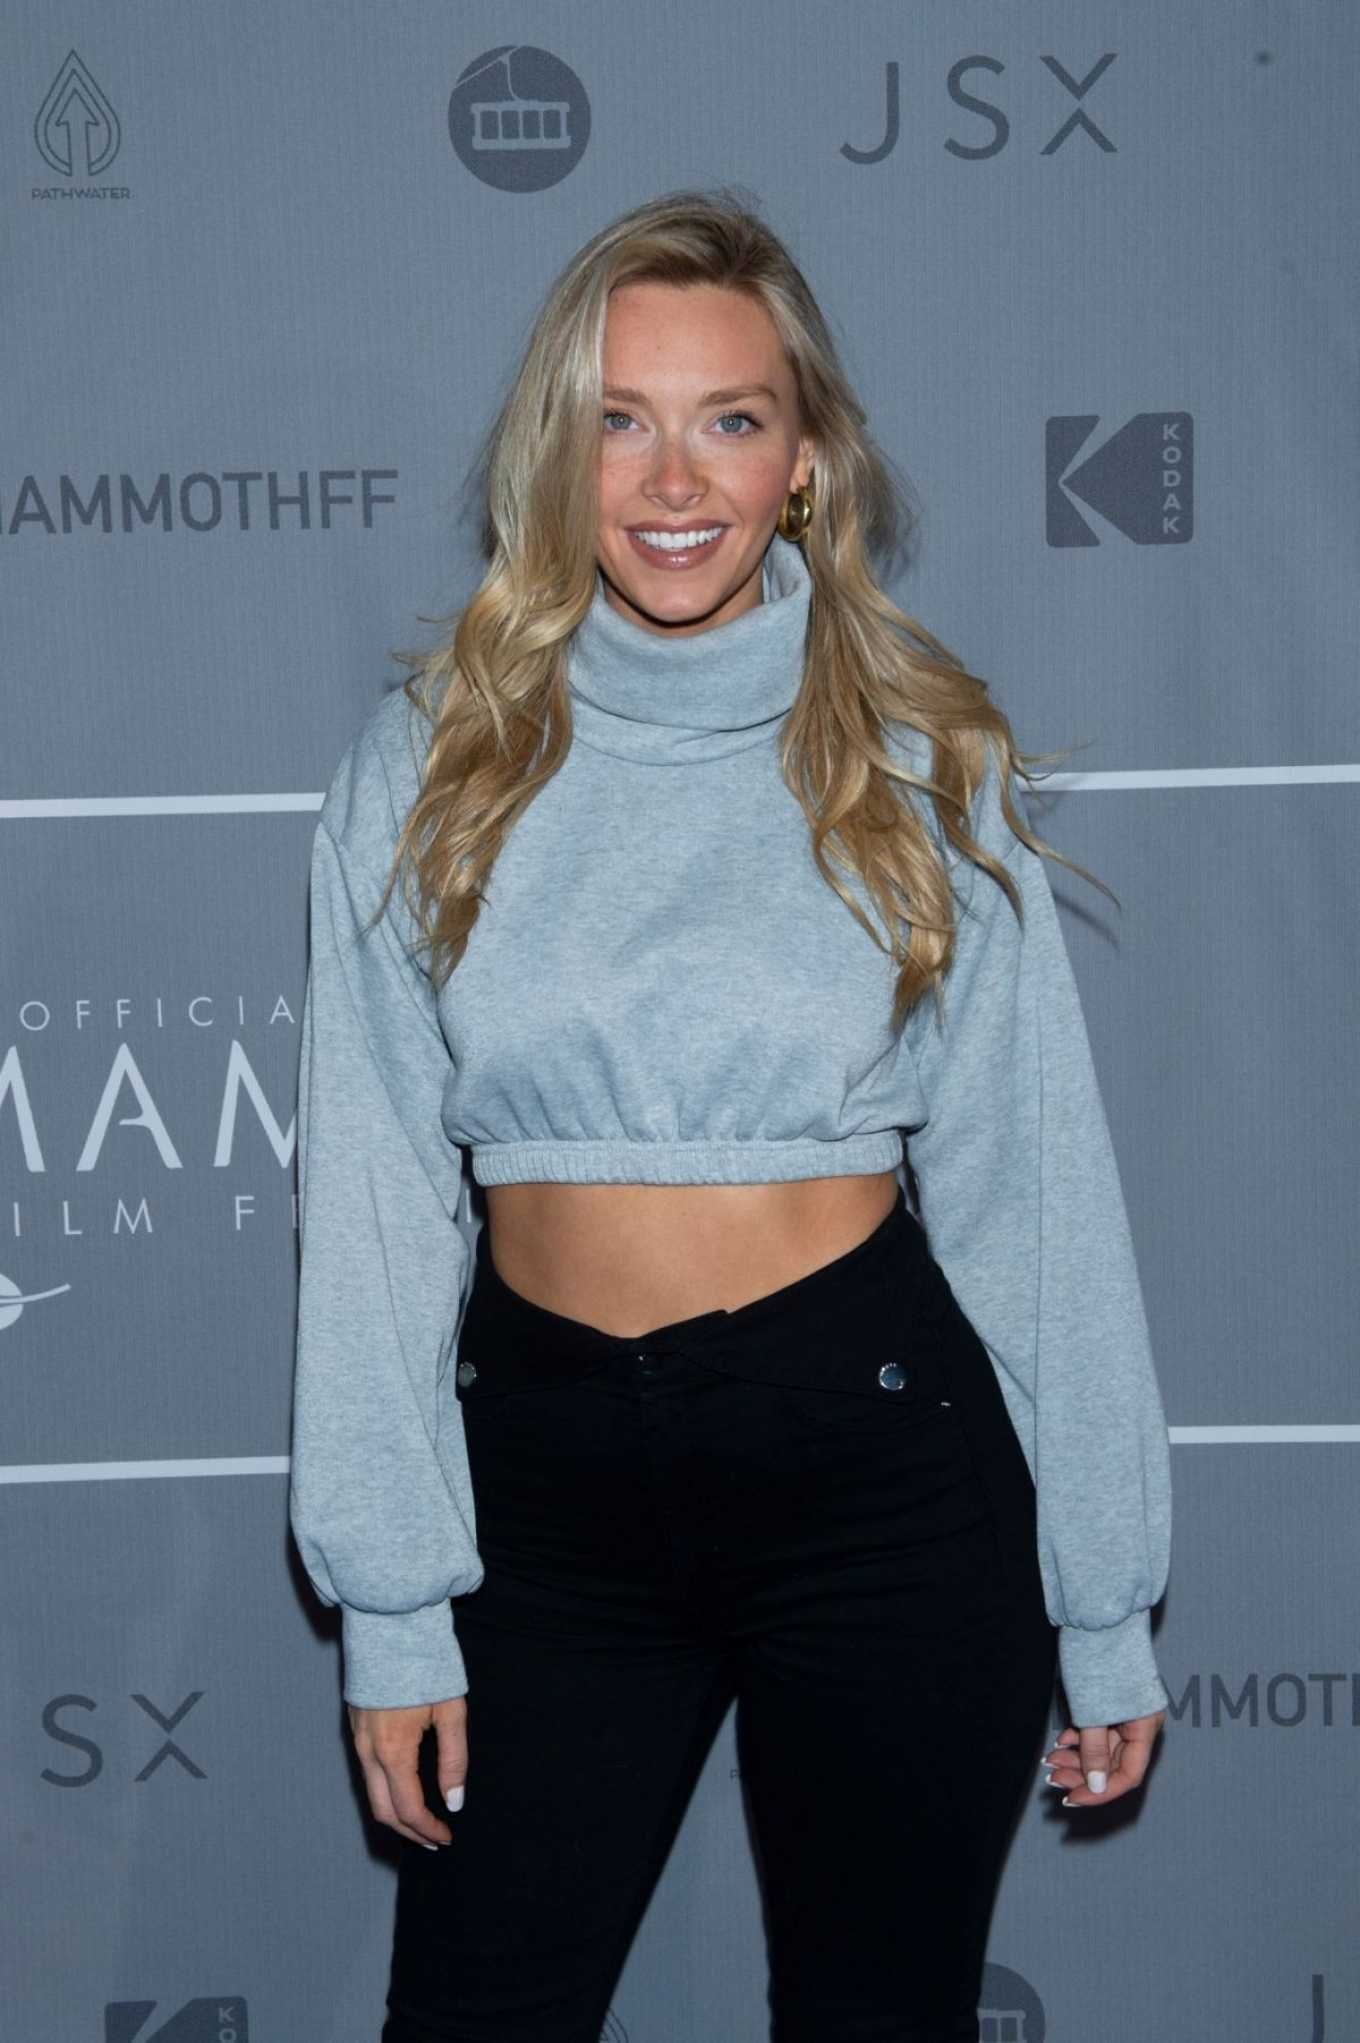 Camille Kostek 2020 : Camille Kostek – Looks radiant at 2020 Mammoth Film Festival in Mammoth Lakes-01